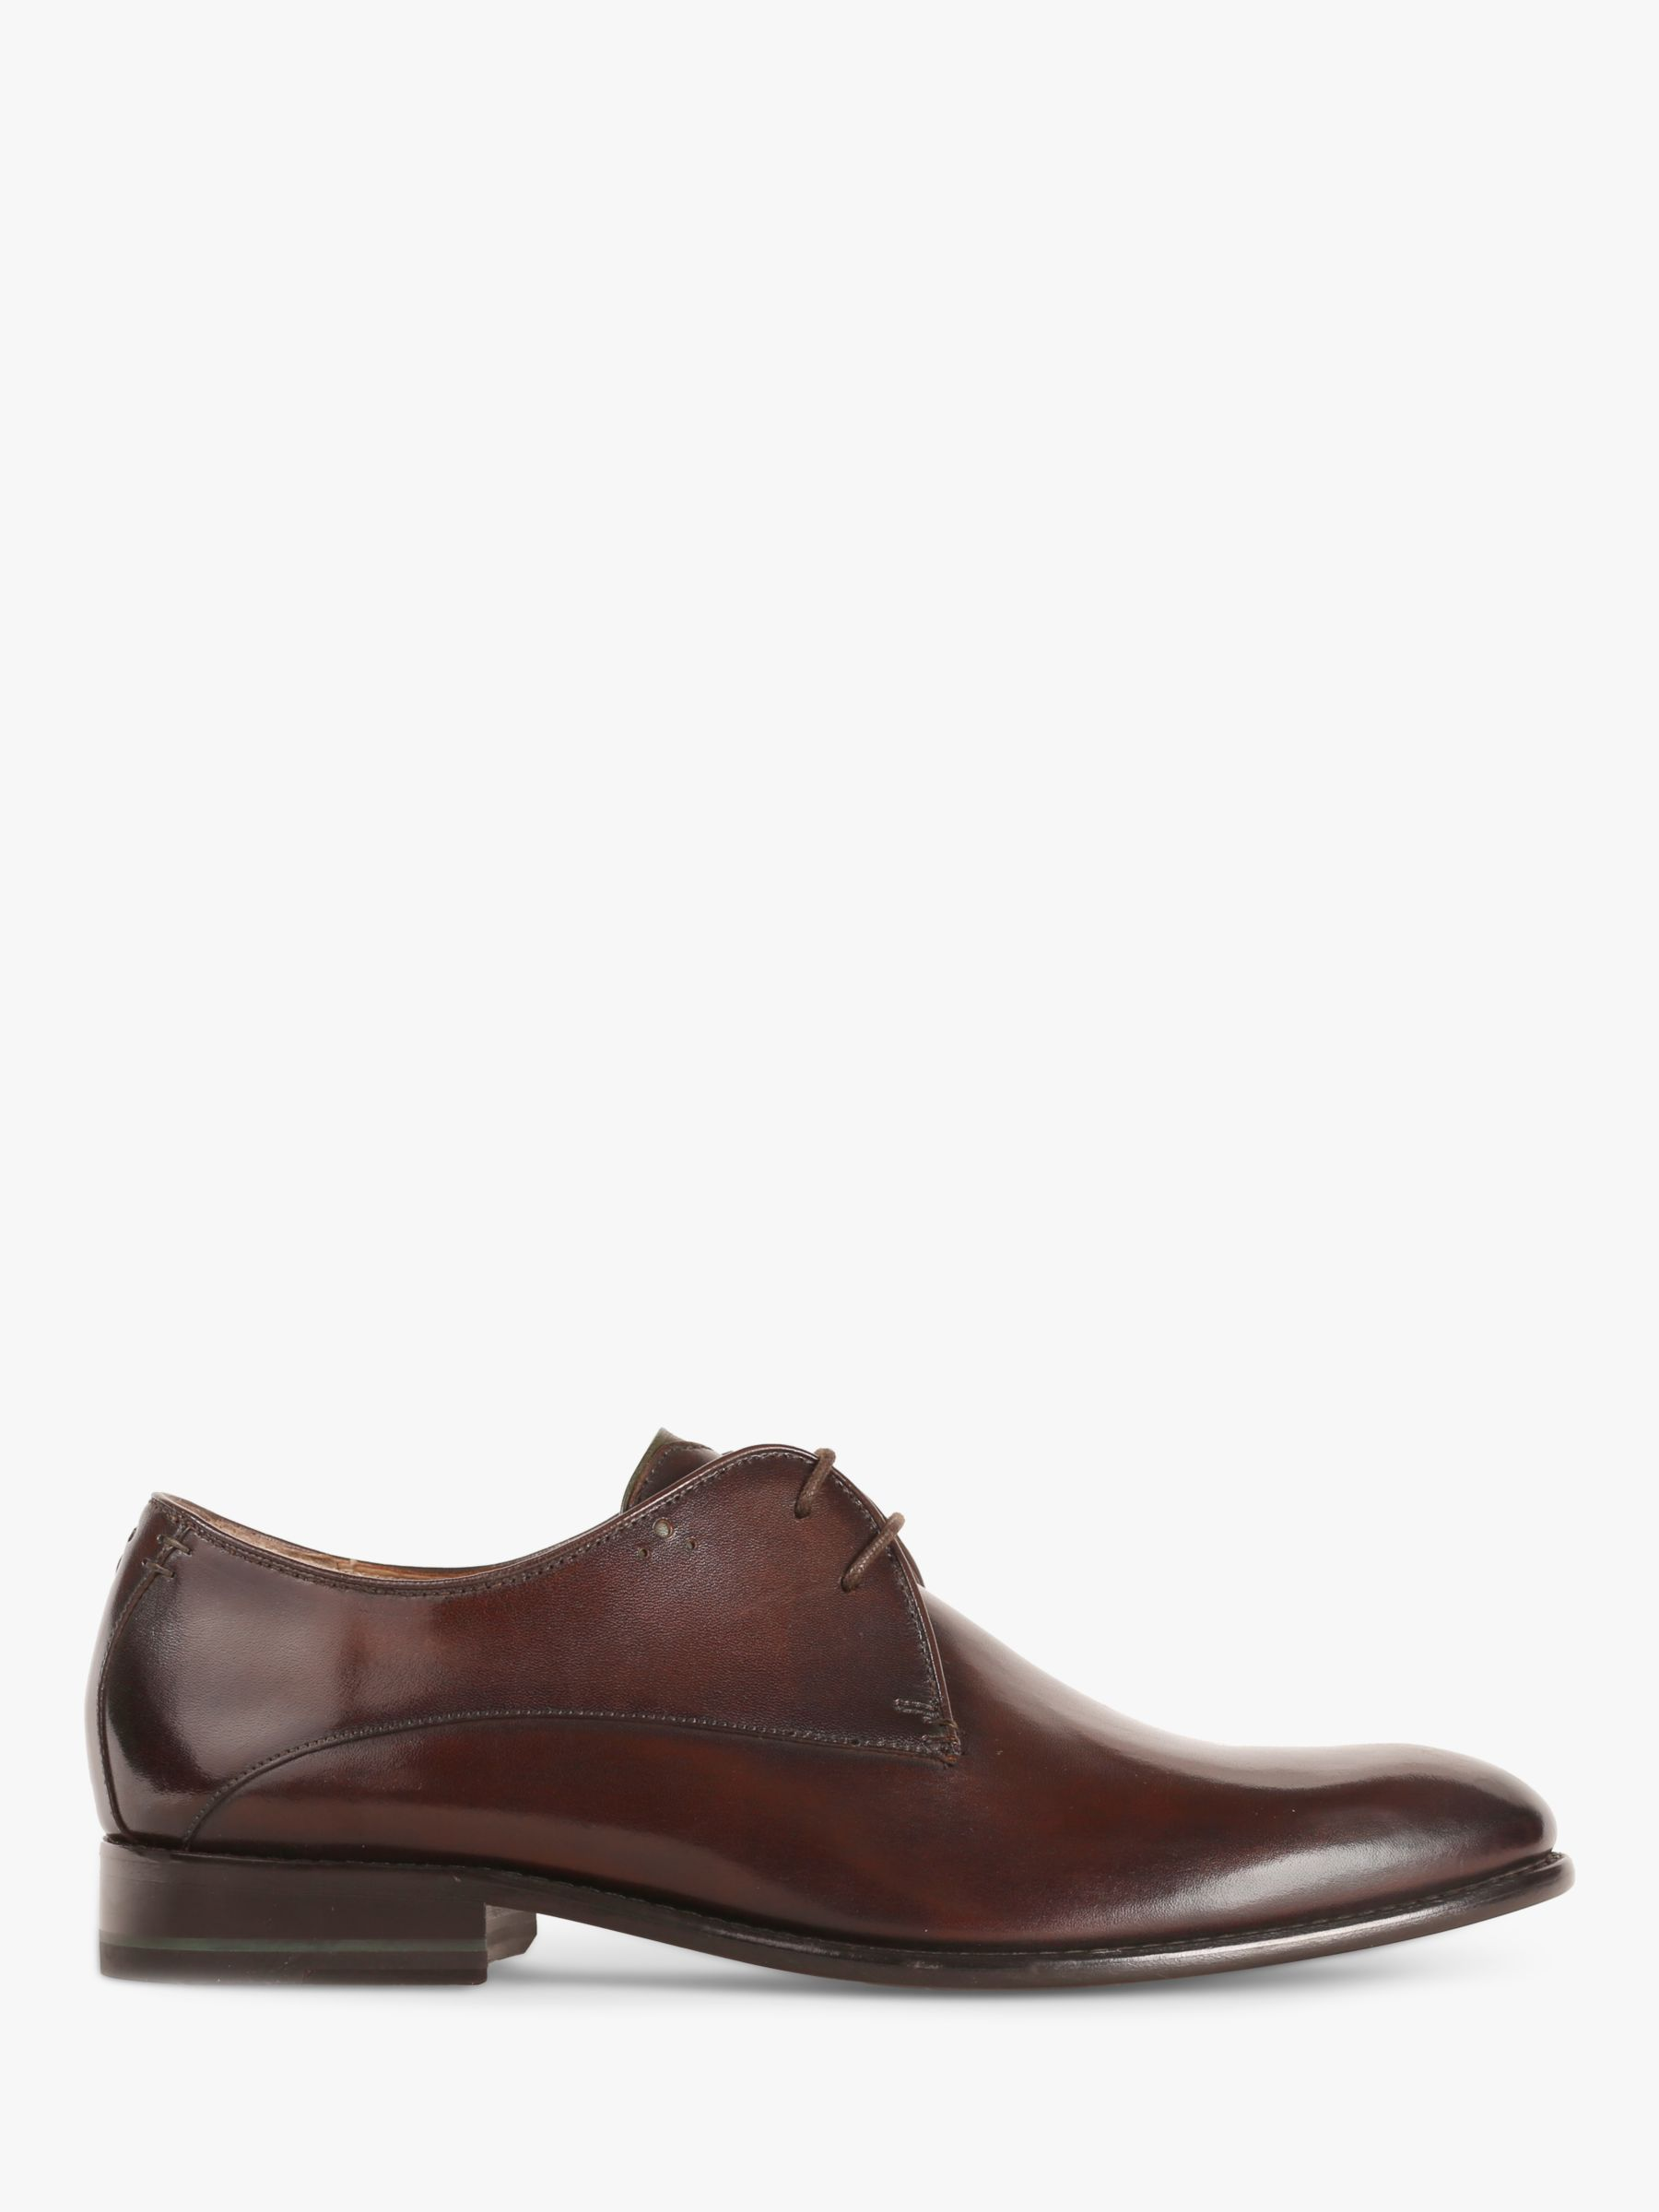 Oliver Sweeney Oliver Sweeney Knole Derby Shoes